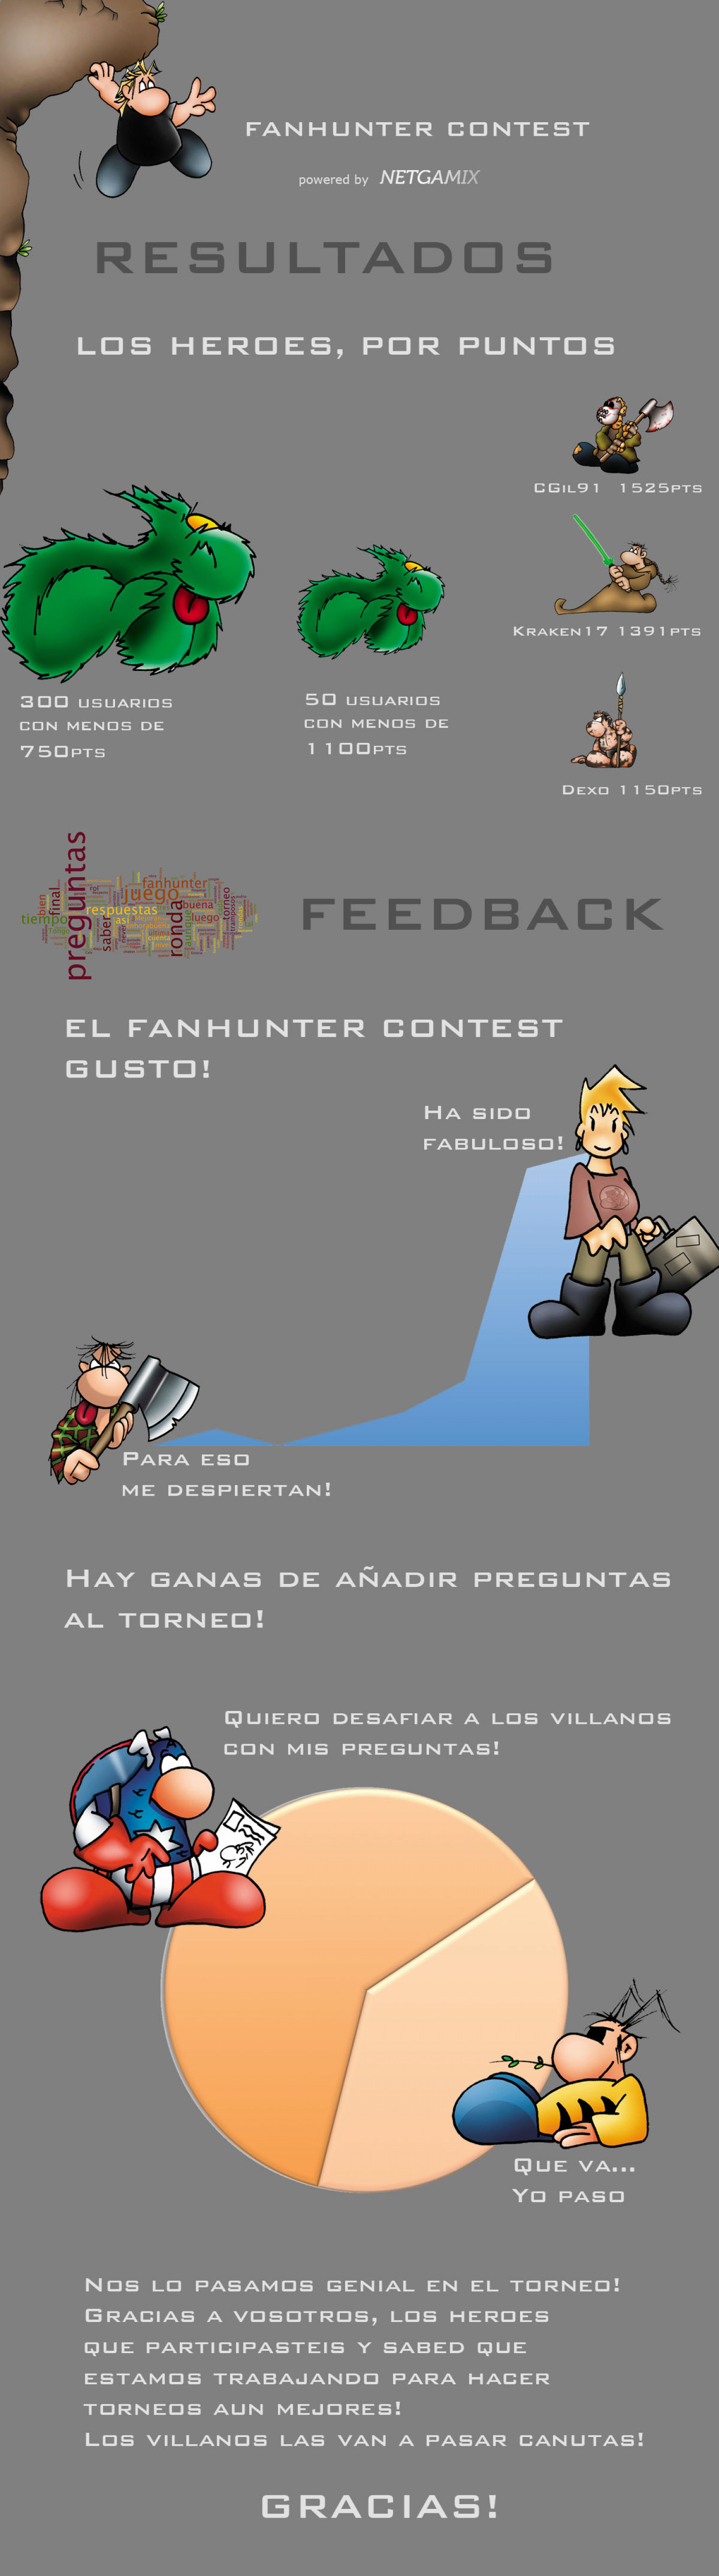 Fanhunter Survival Contest! Infographic